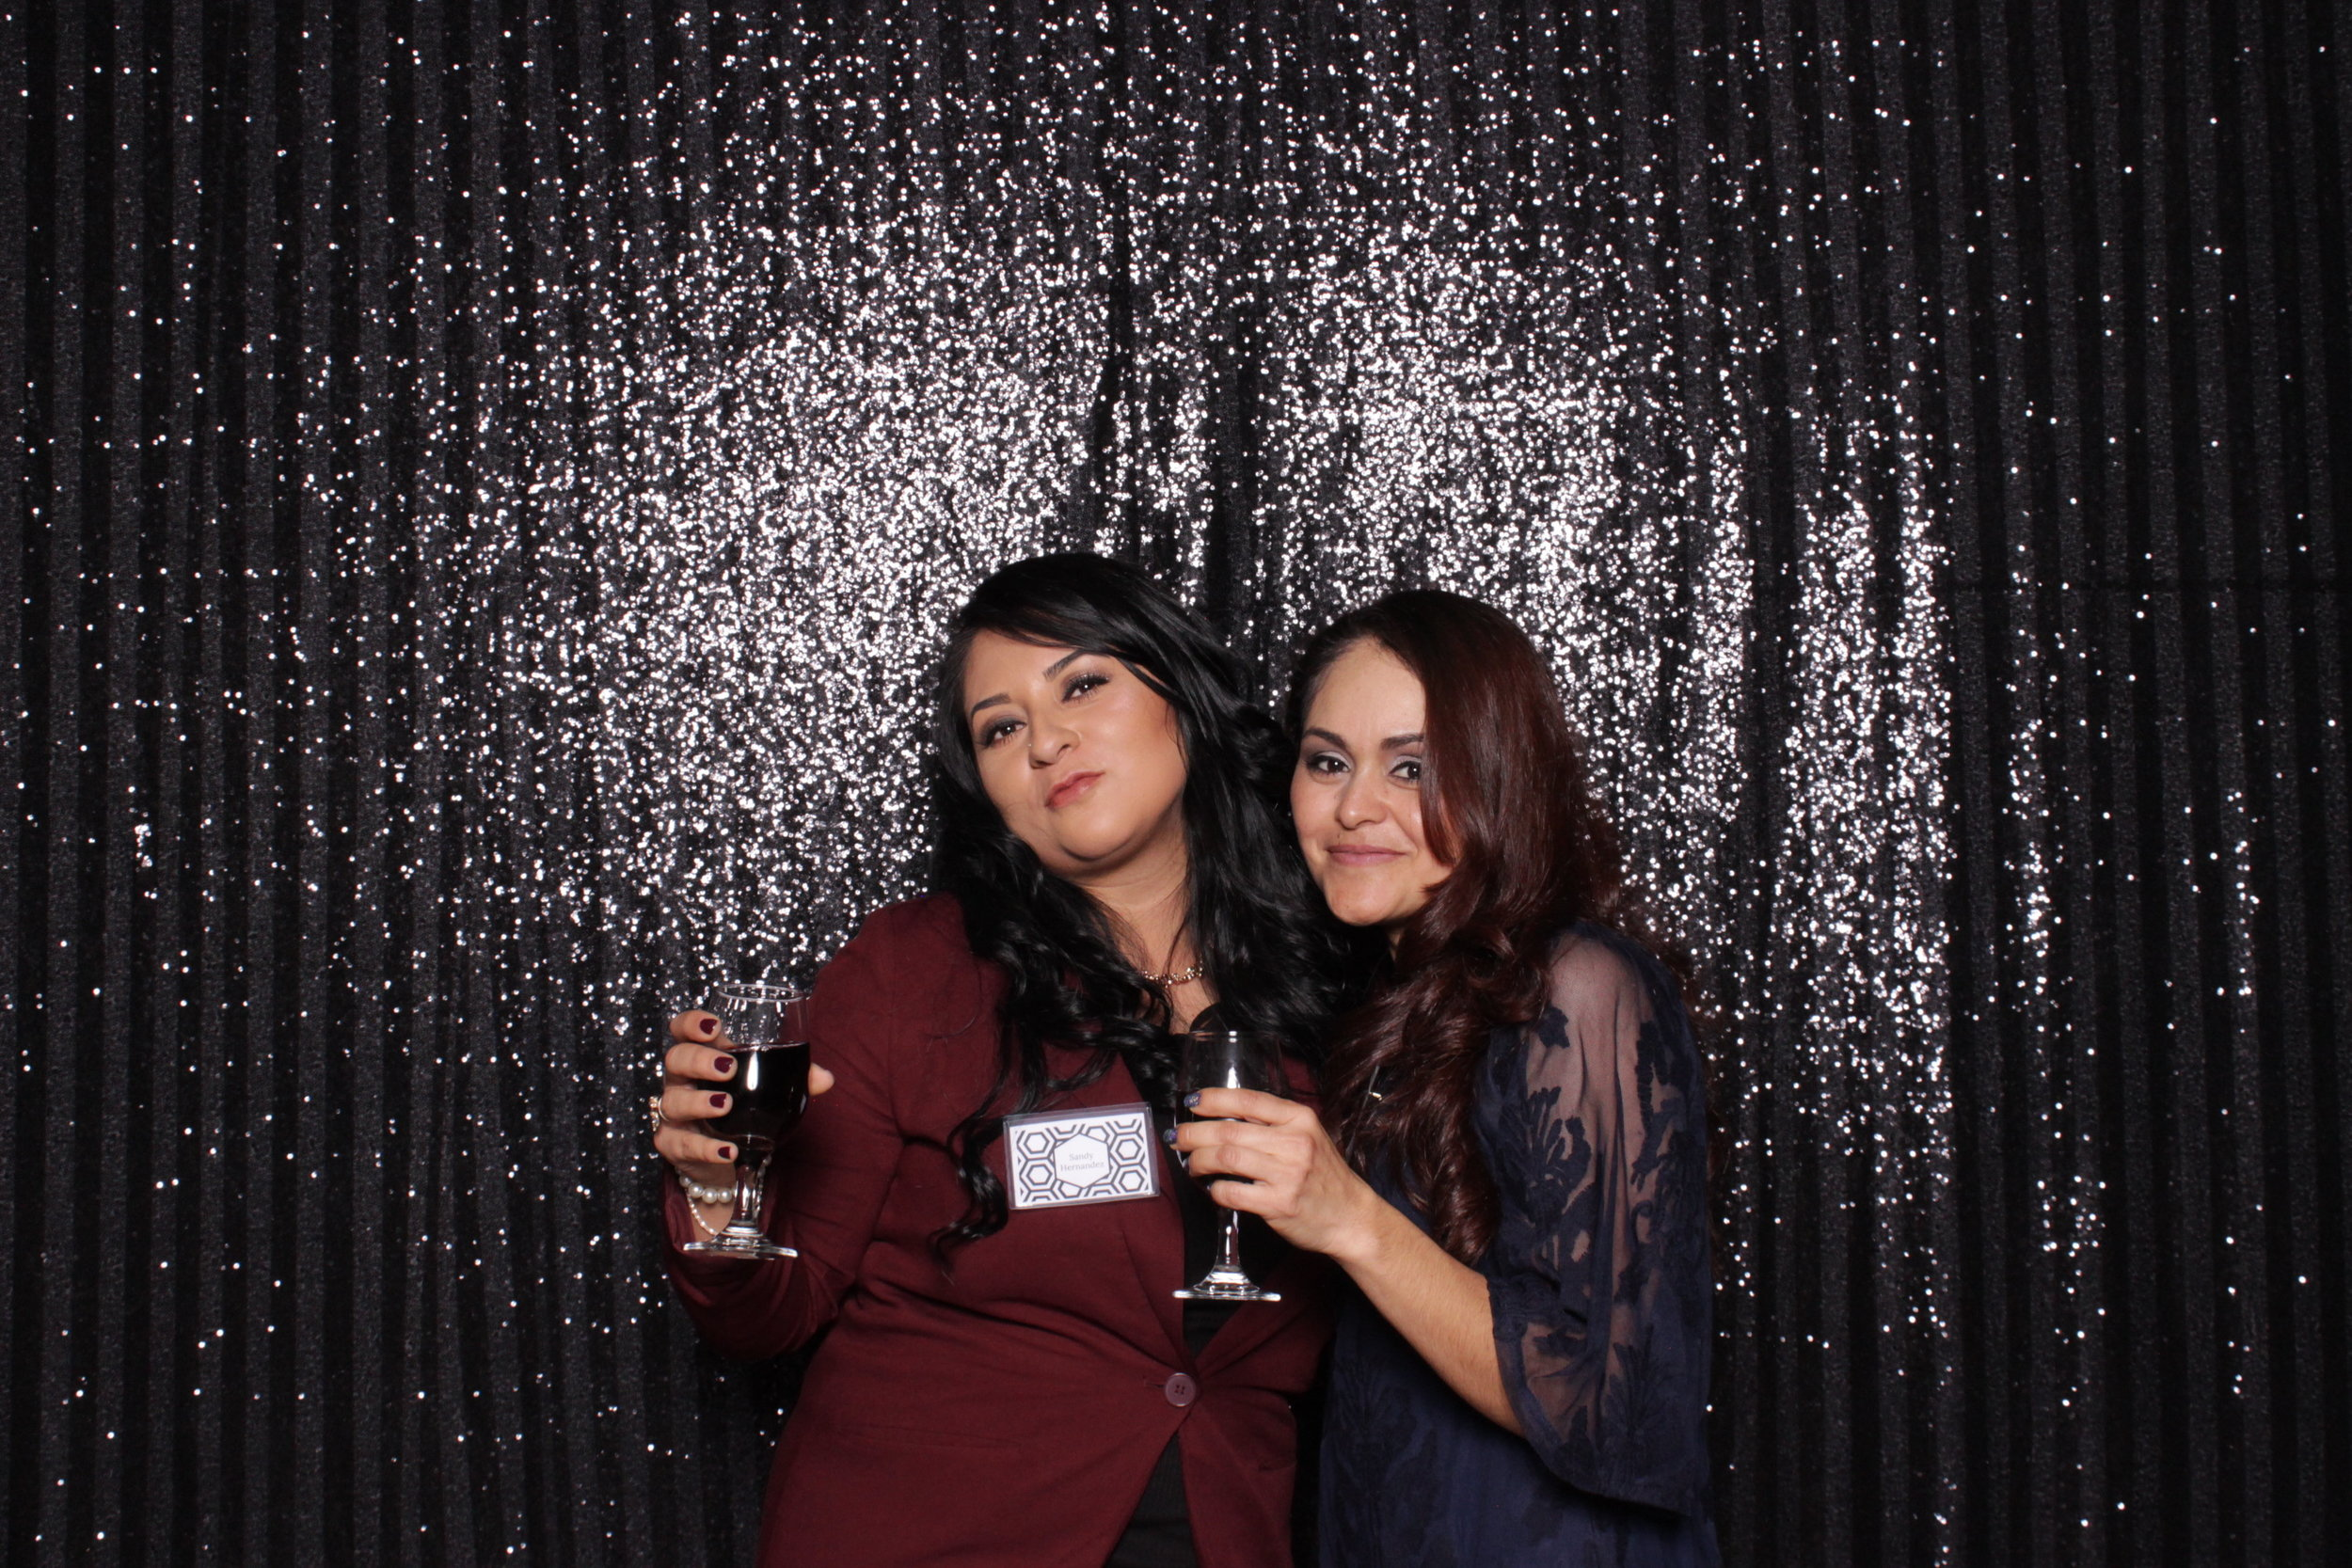 Chico-photo-booth-rental-decorated